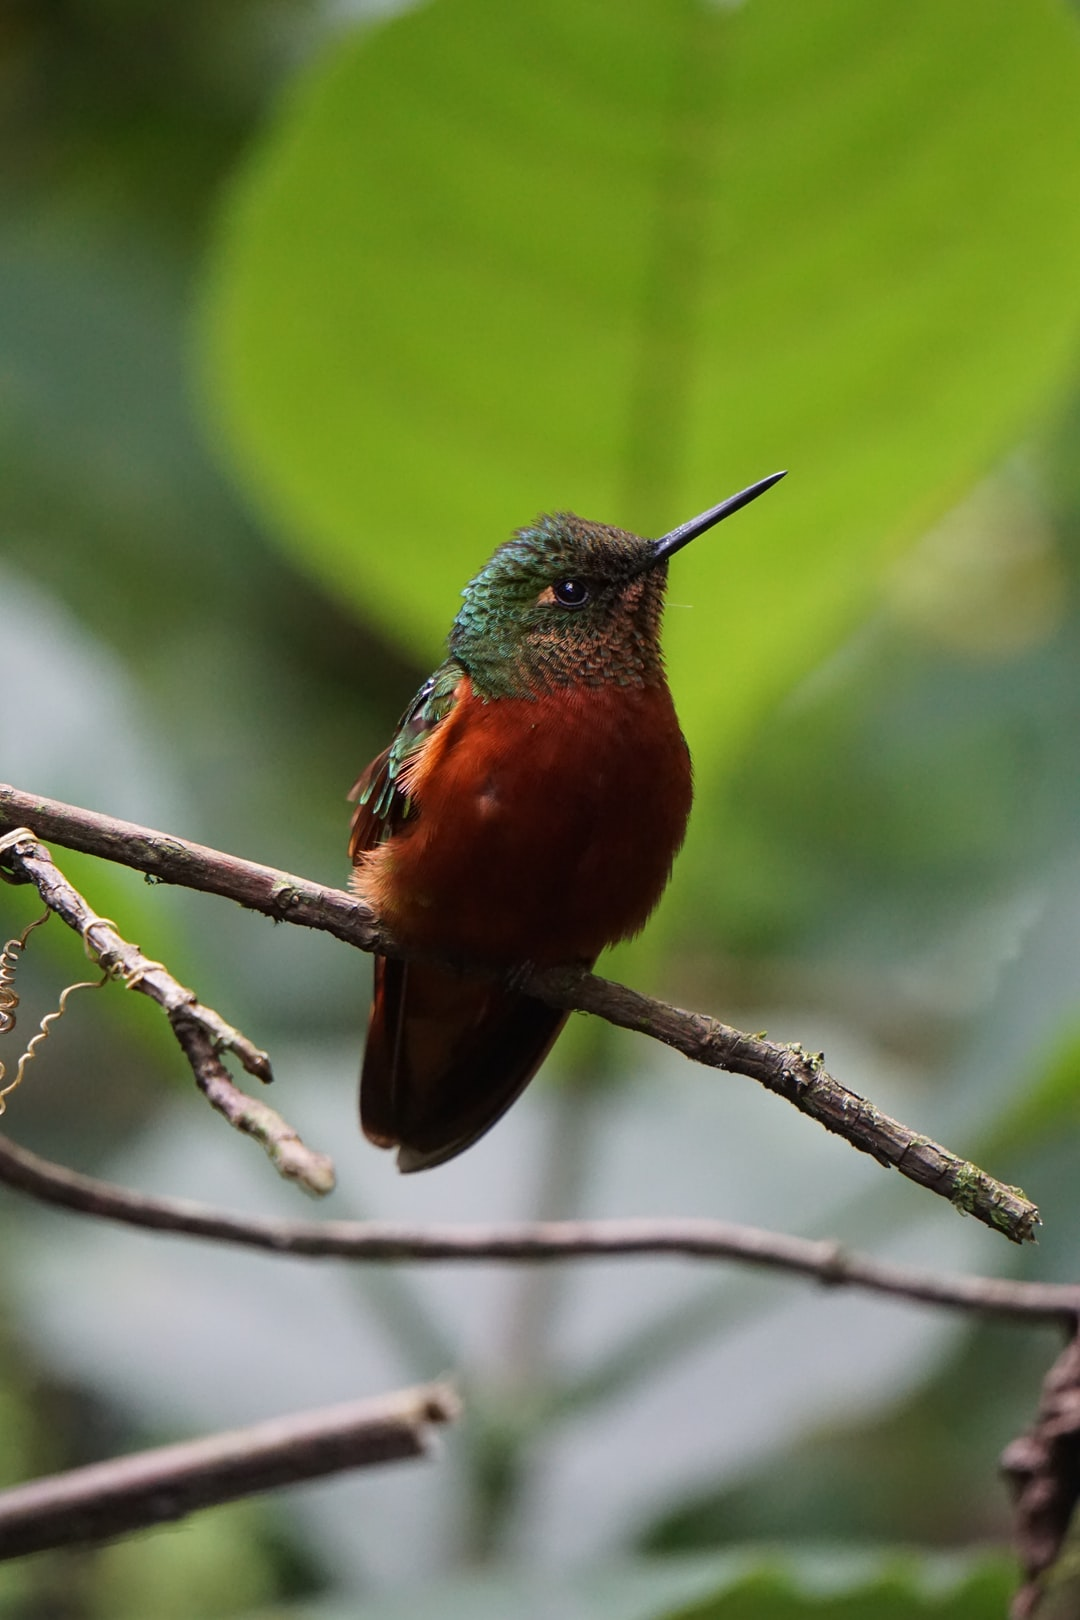 This was one of the rare colibris that stopped by to say hello while we were enjoying our lunch.